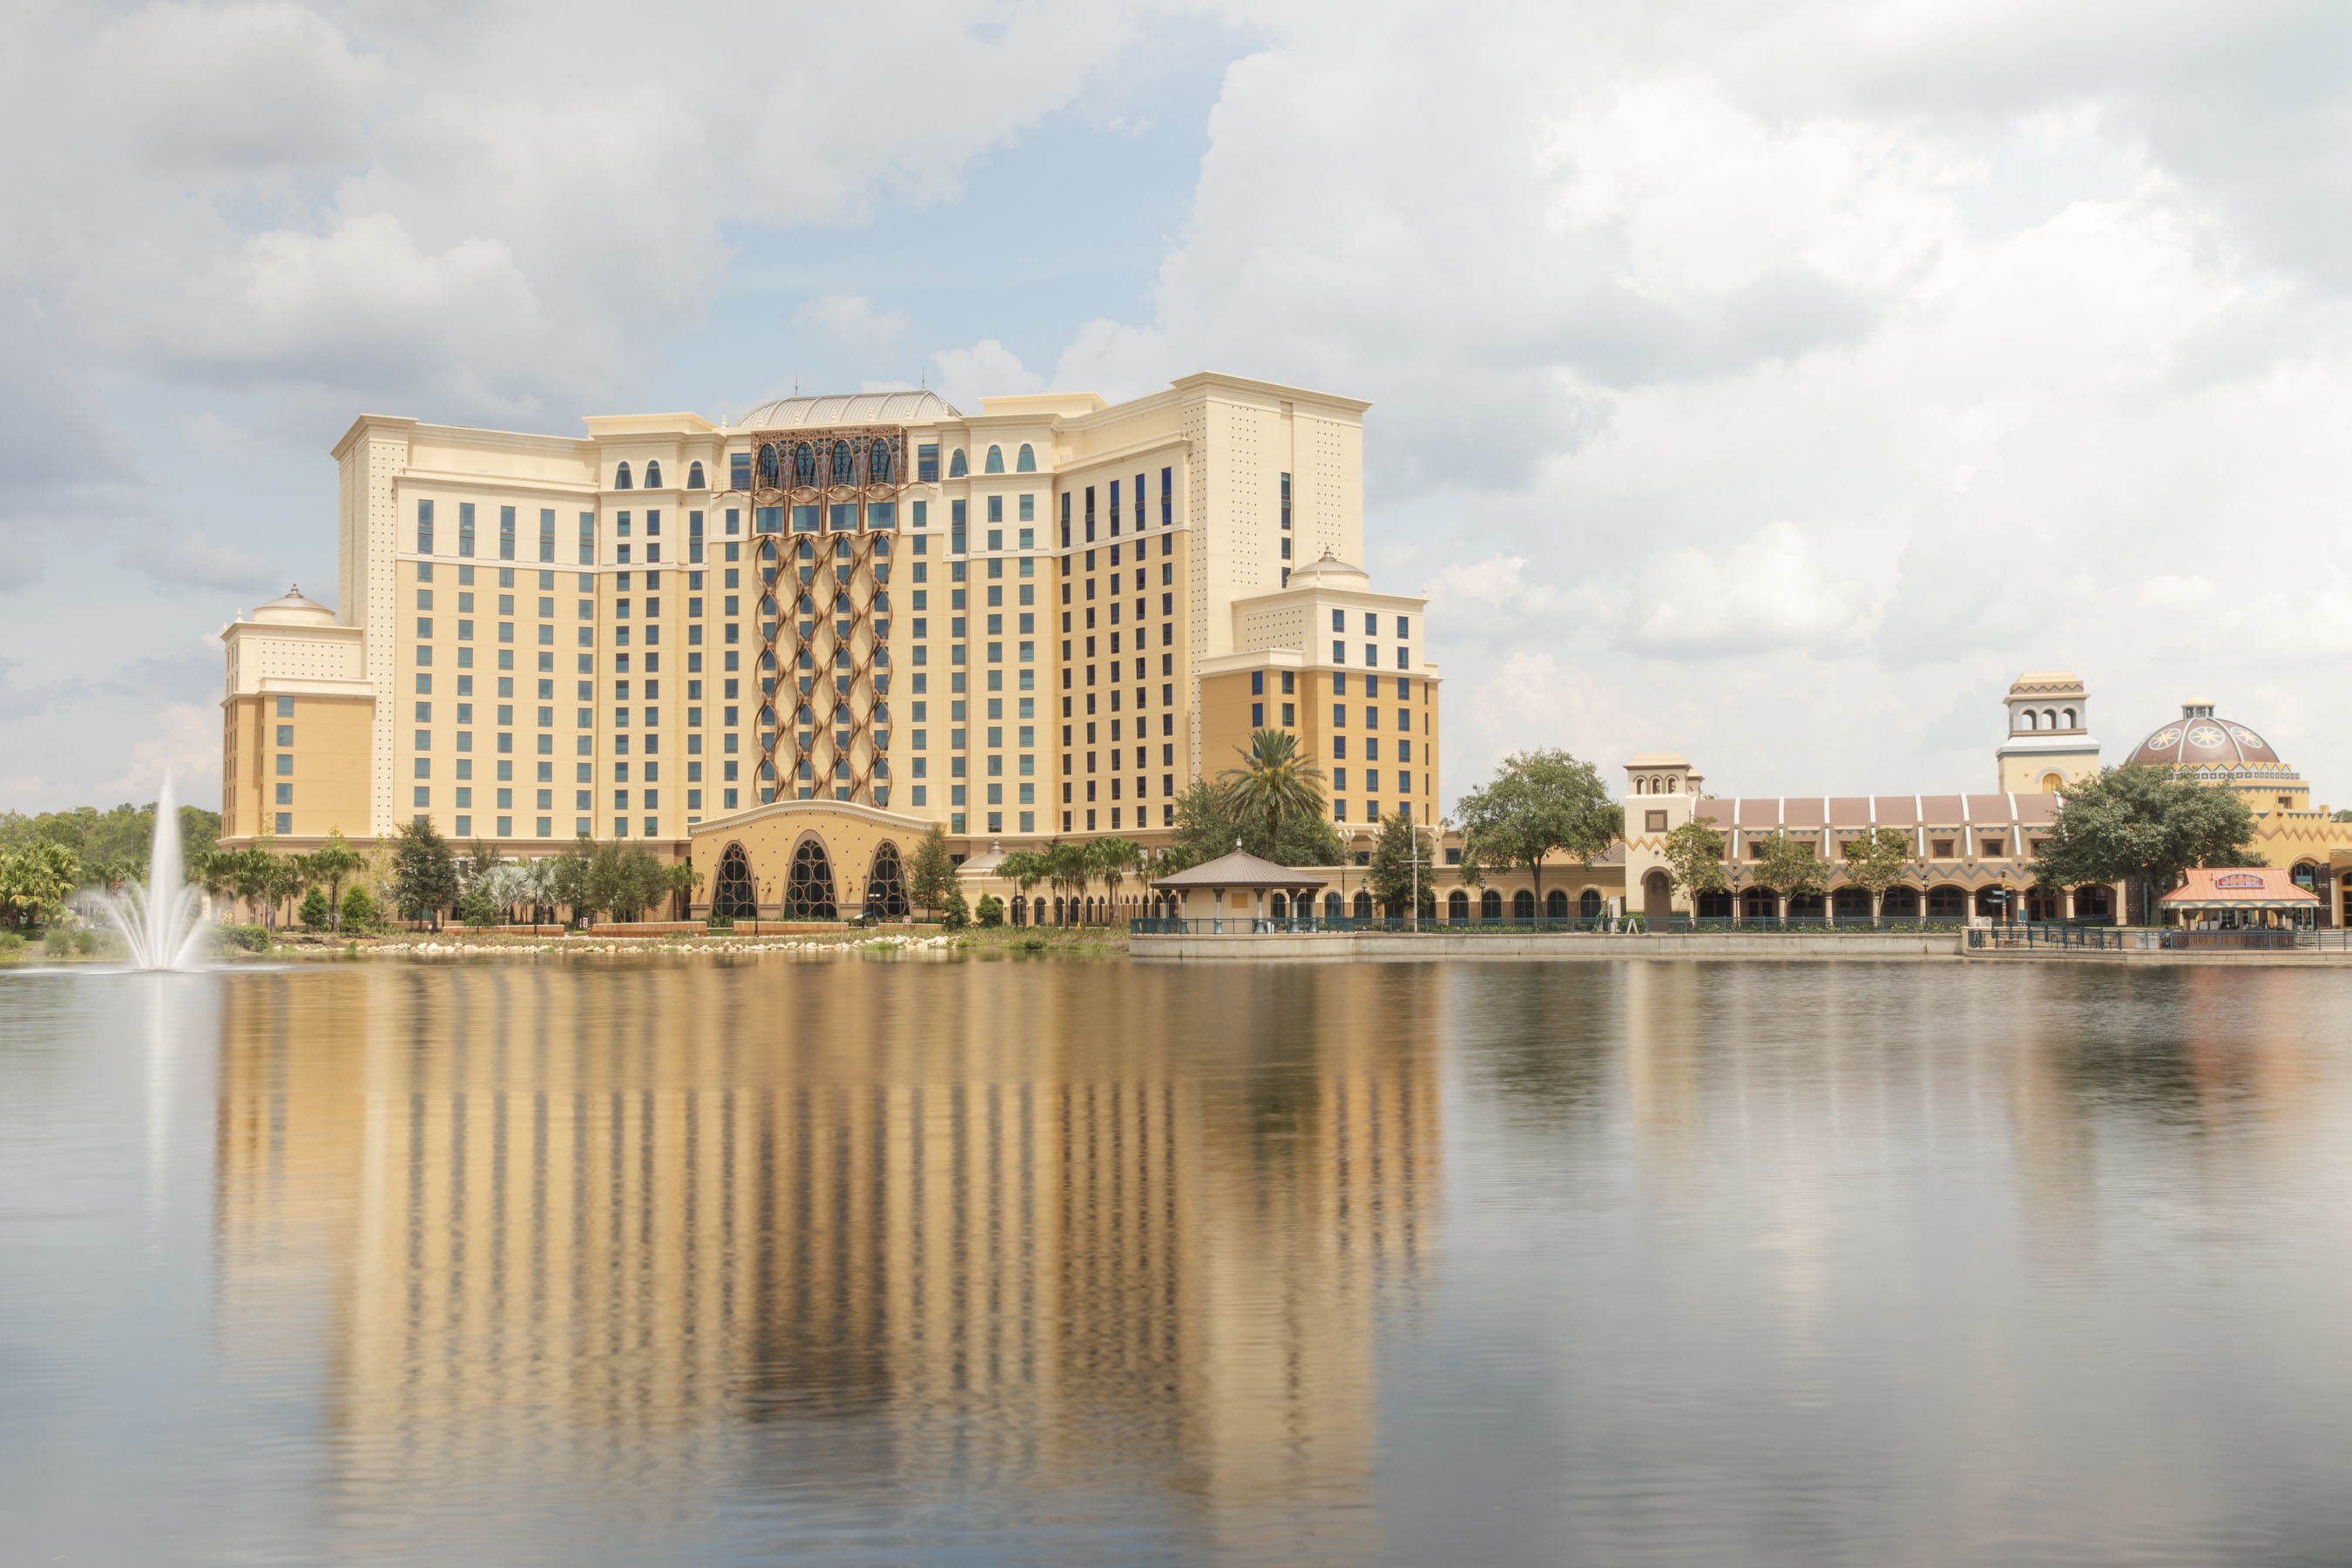 The Grand Destino Tower viewed across the lake